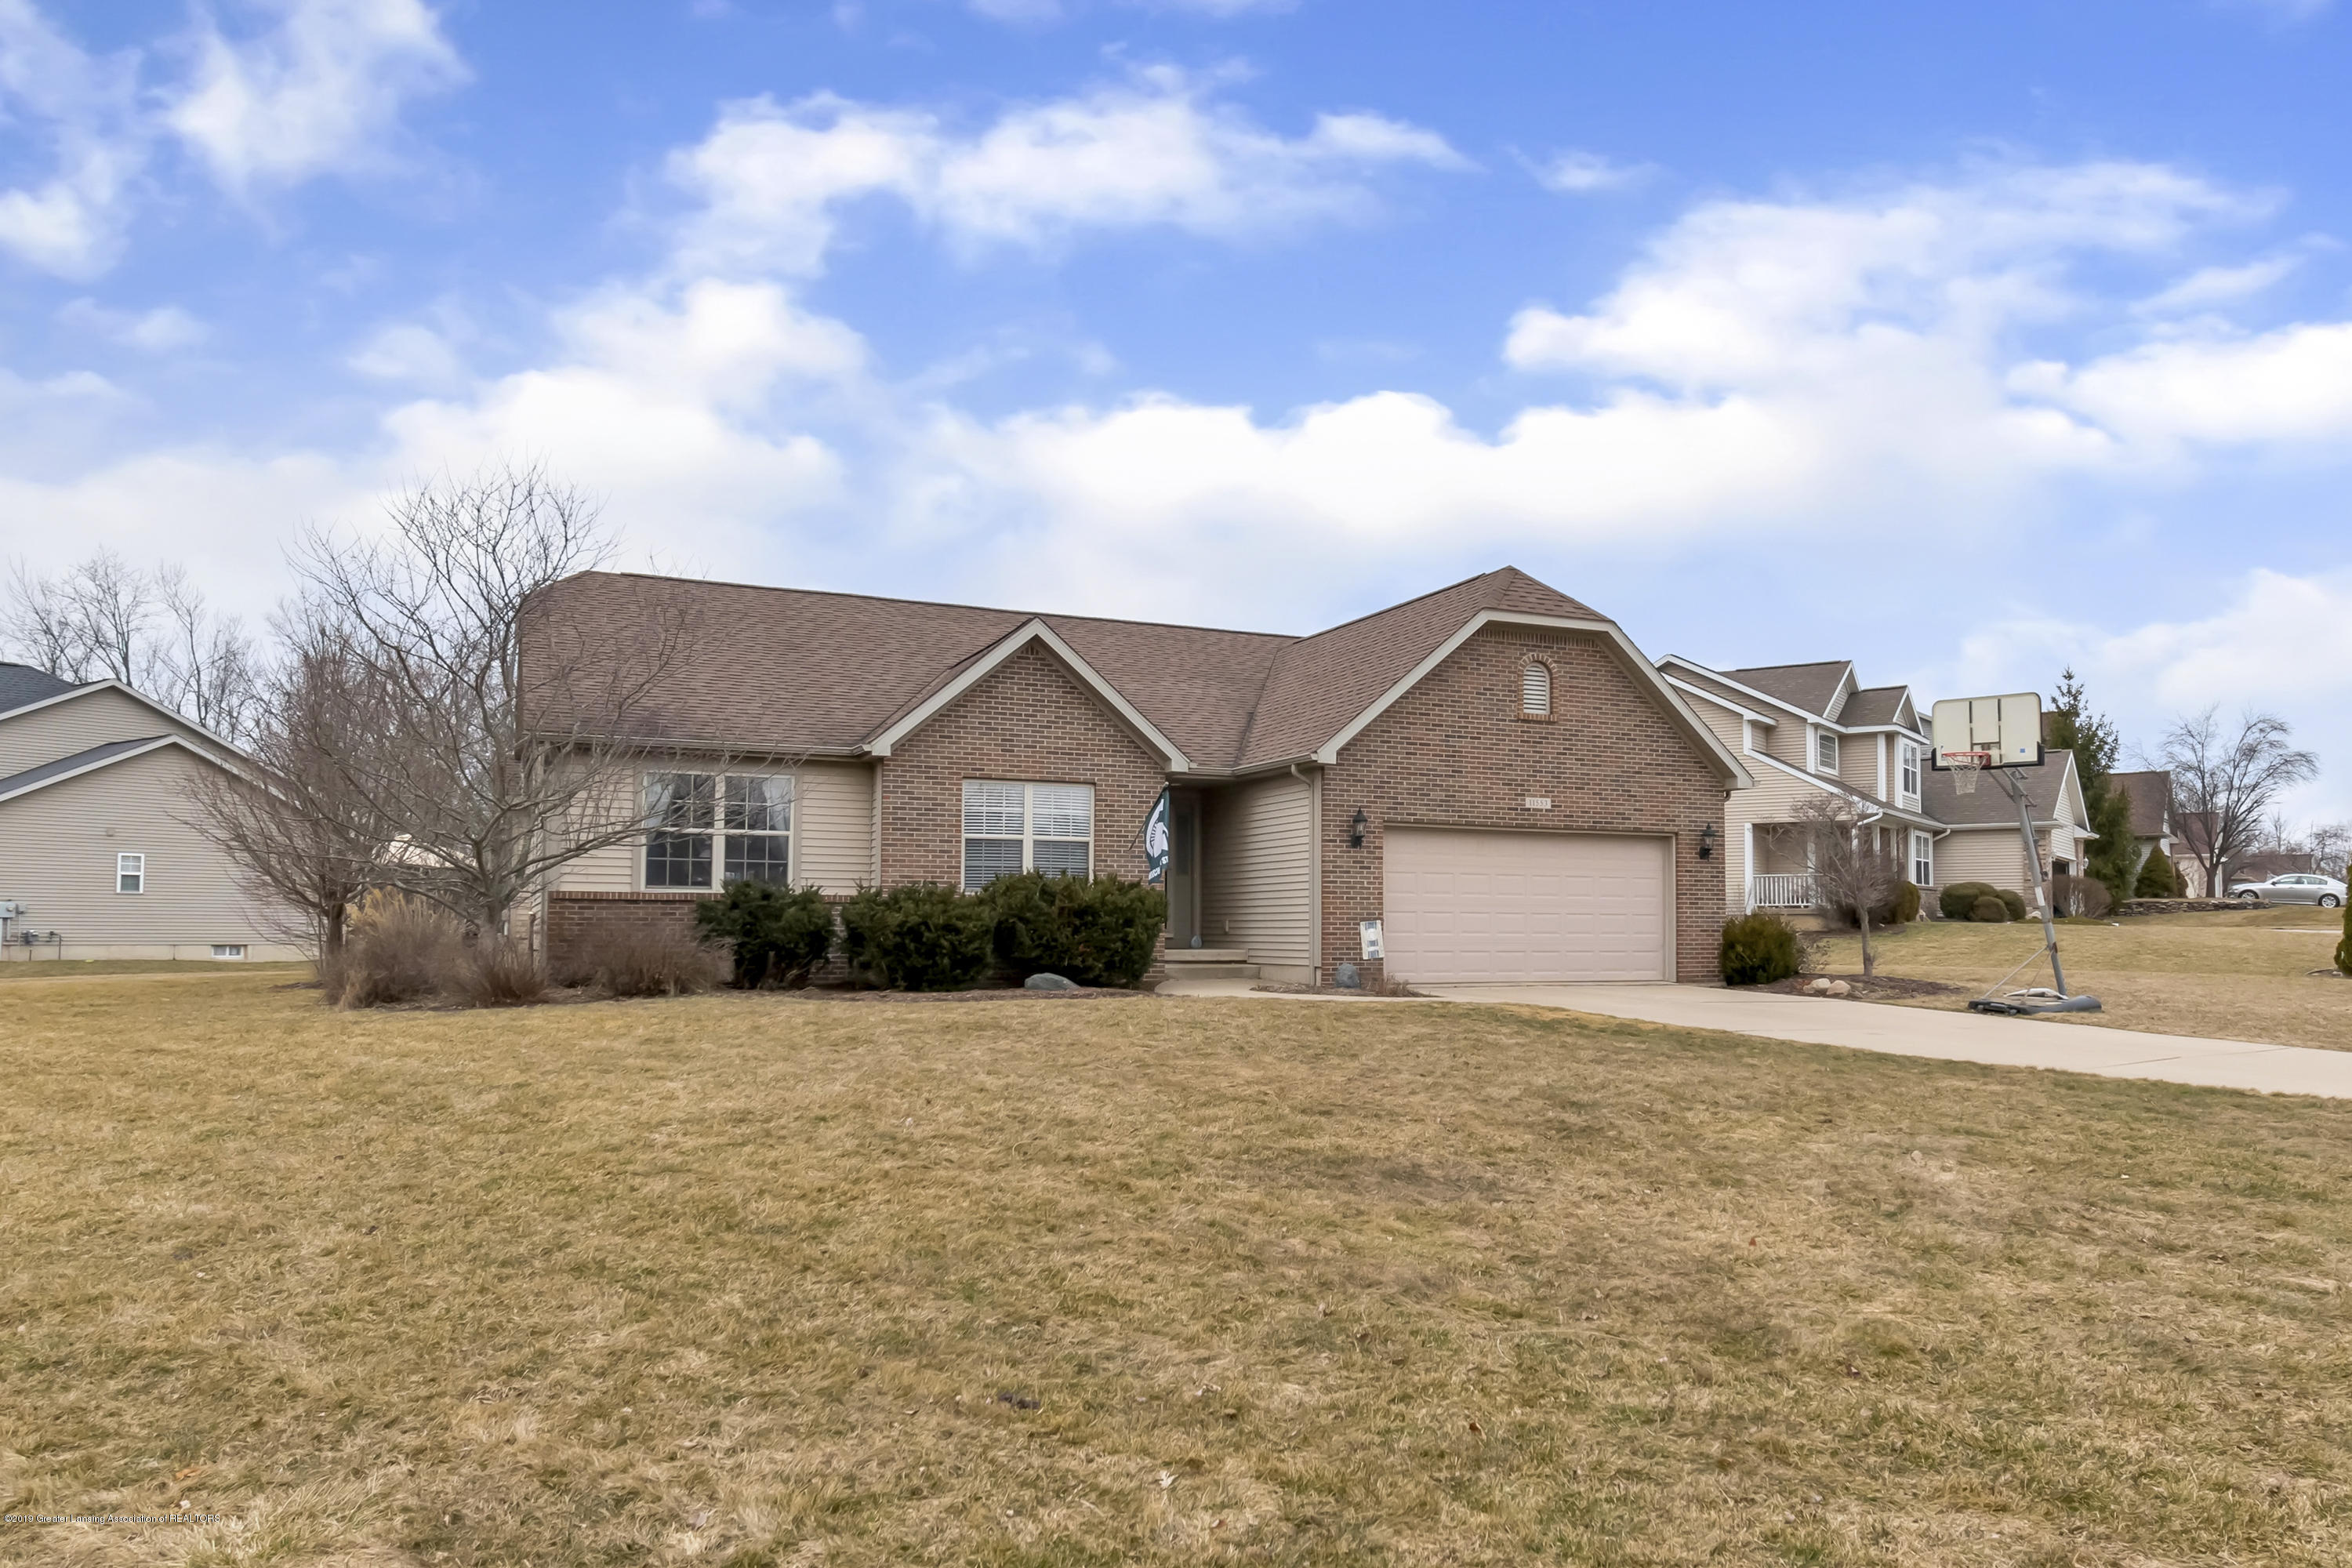 11553 Gold Fields Dr - 11553-Gold-Fields-Dr-Grand-Ledge-MI-wind - 3